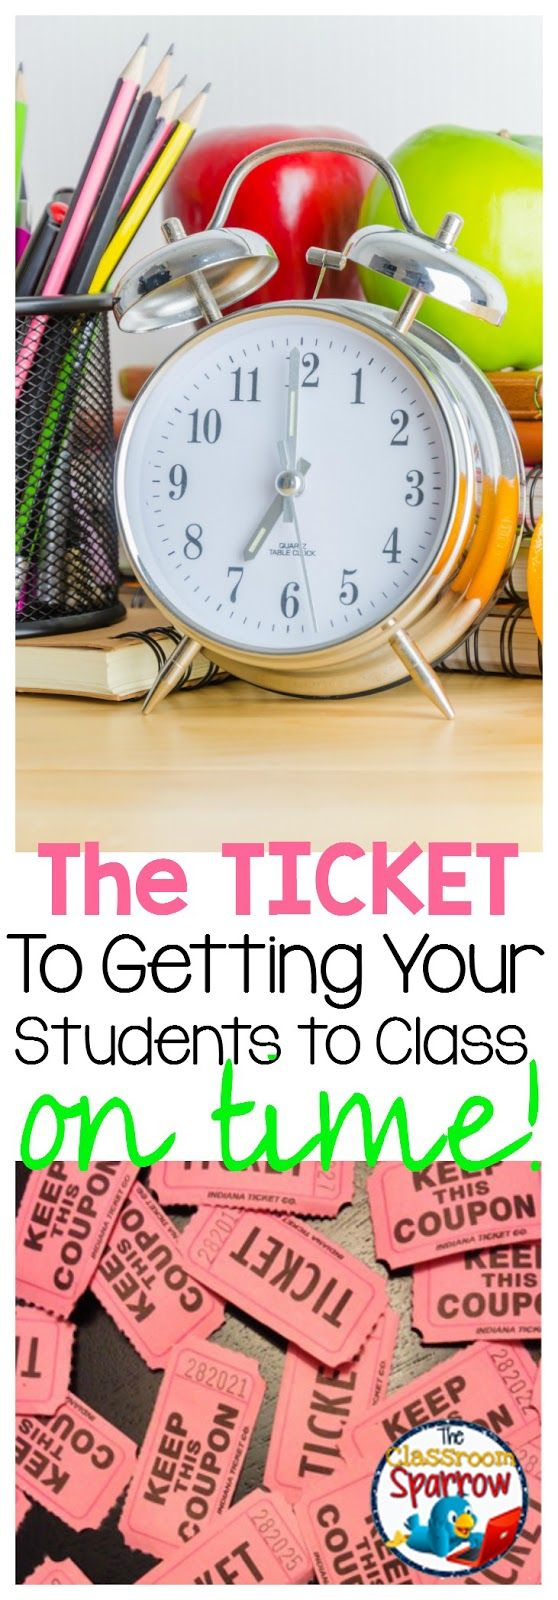 The Ticket to Getting Your Students to Class on Time